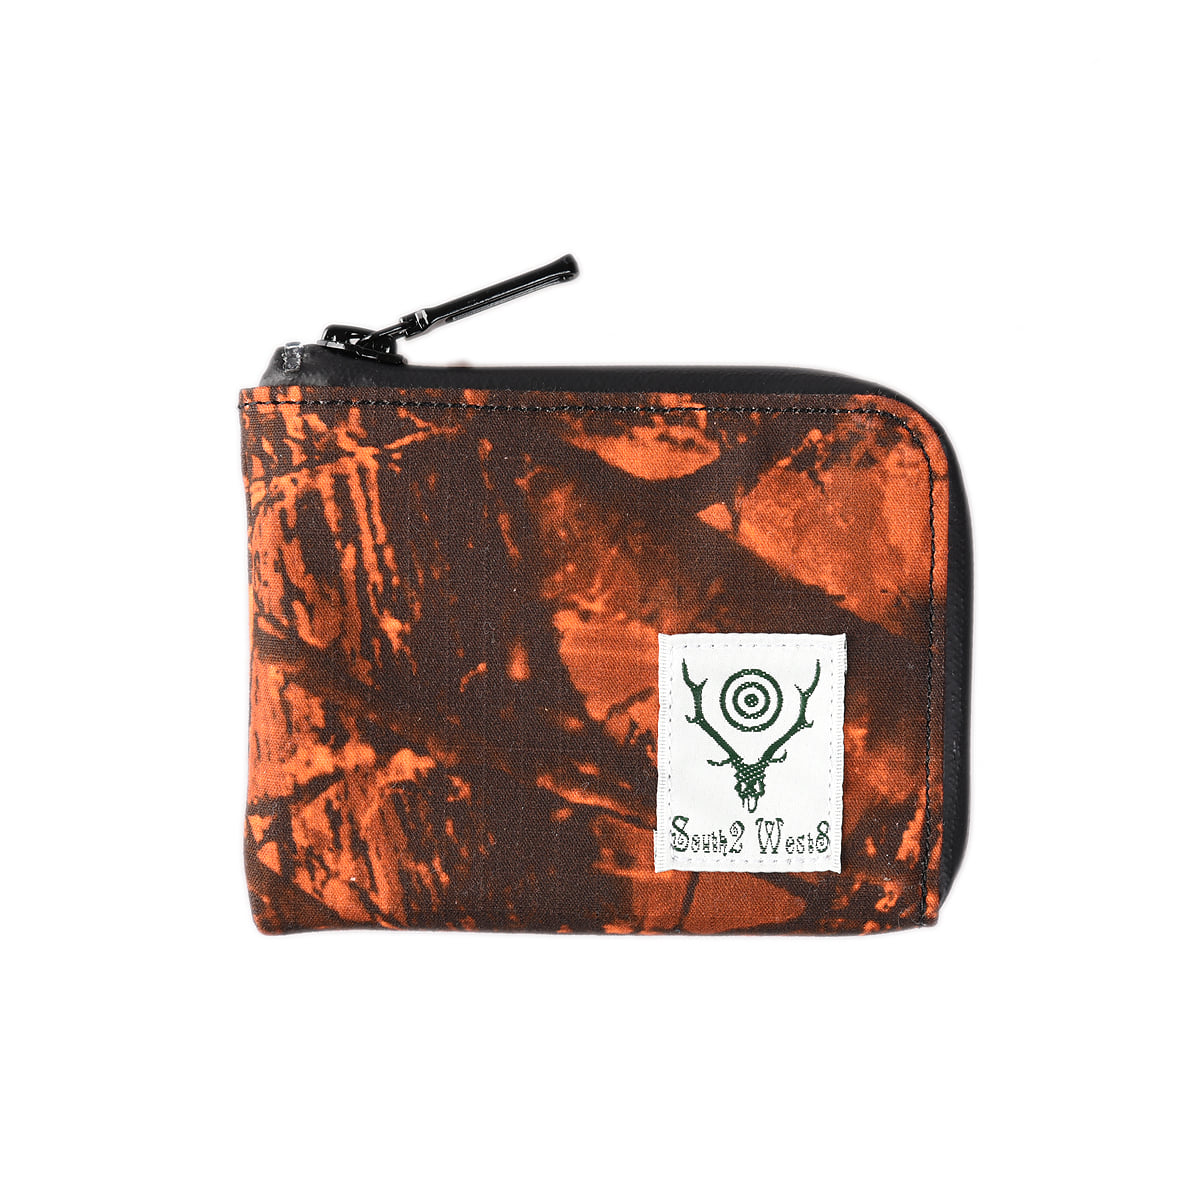 "SOUTH2 WEST8 Coin Case Water Proof ""S2W8 Orange Camo"""